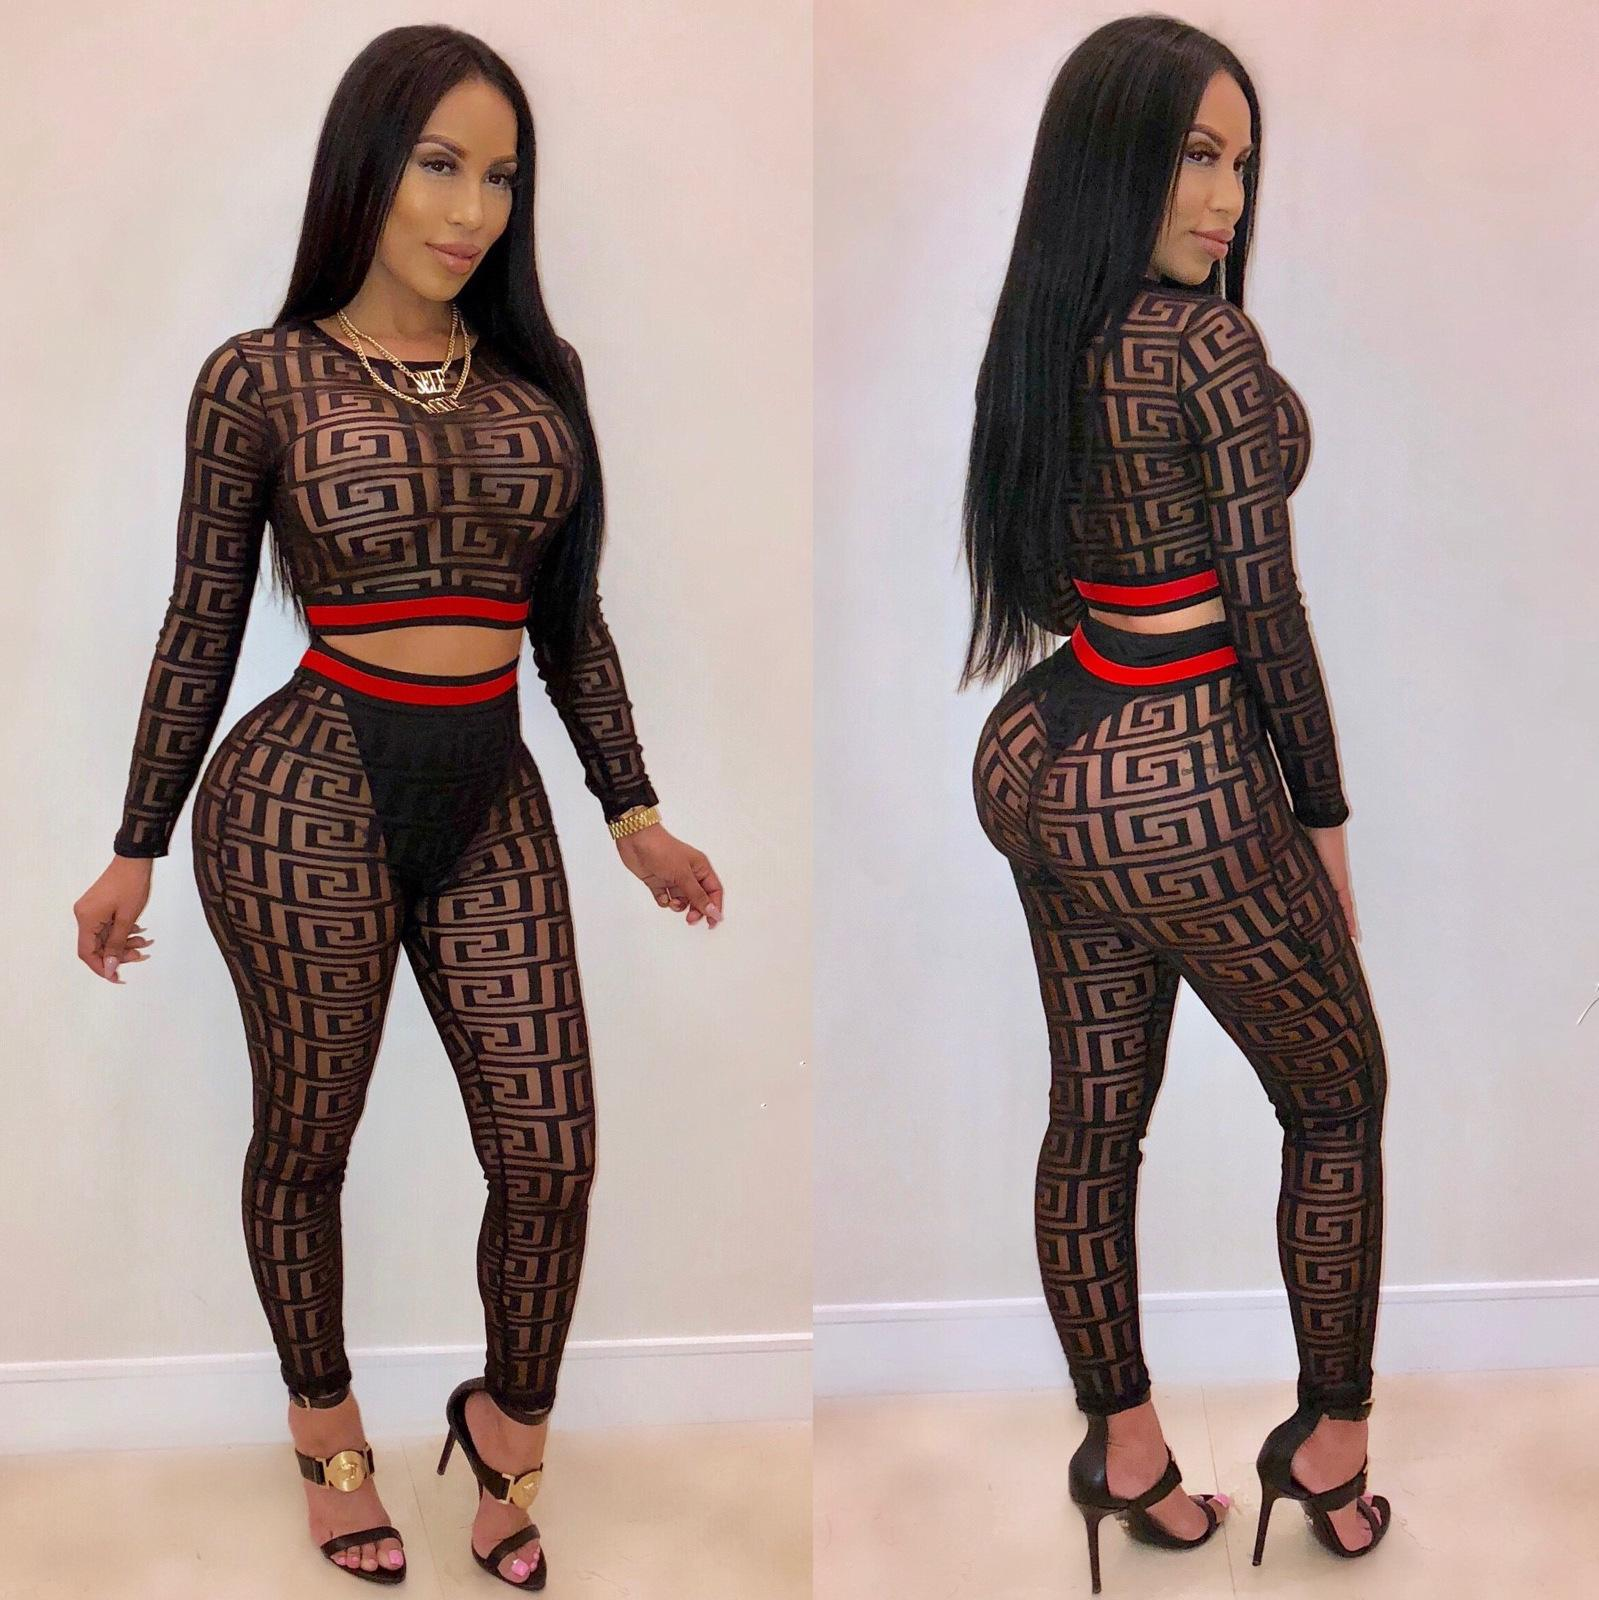 Women Tracksuits Autumn Sports Suits Black Sheer Gauze Side Ribbons Crop Top High Waist Slim Fit Two Piece Outfits Set Nightclubs 2pc Set